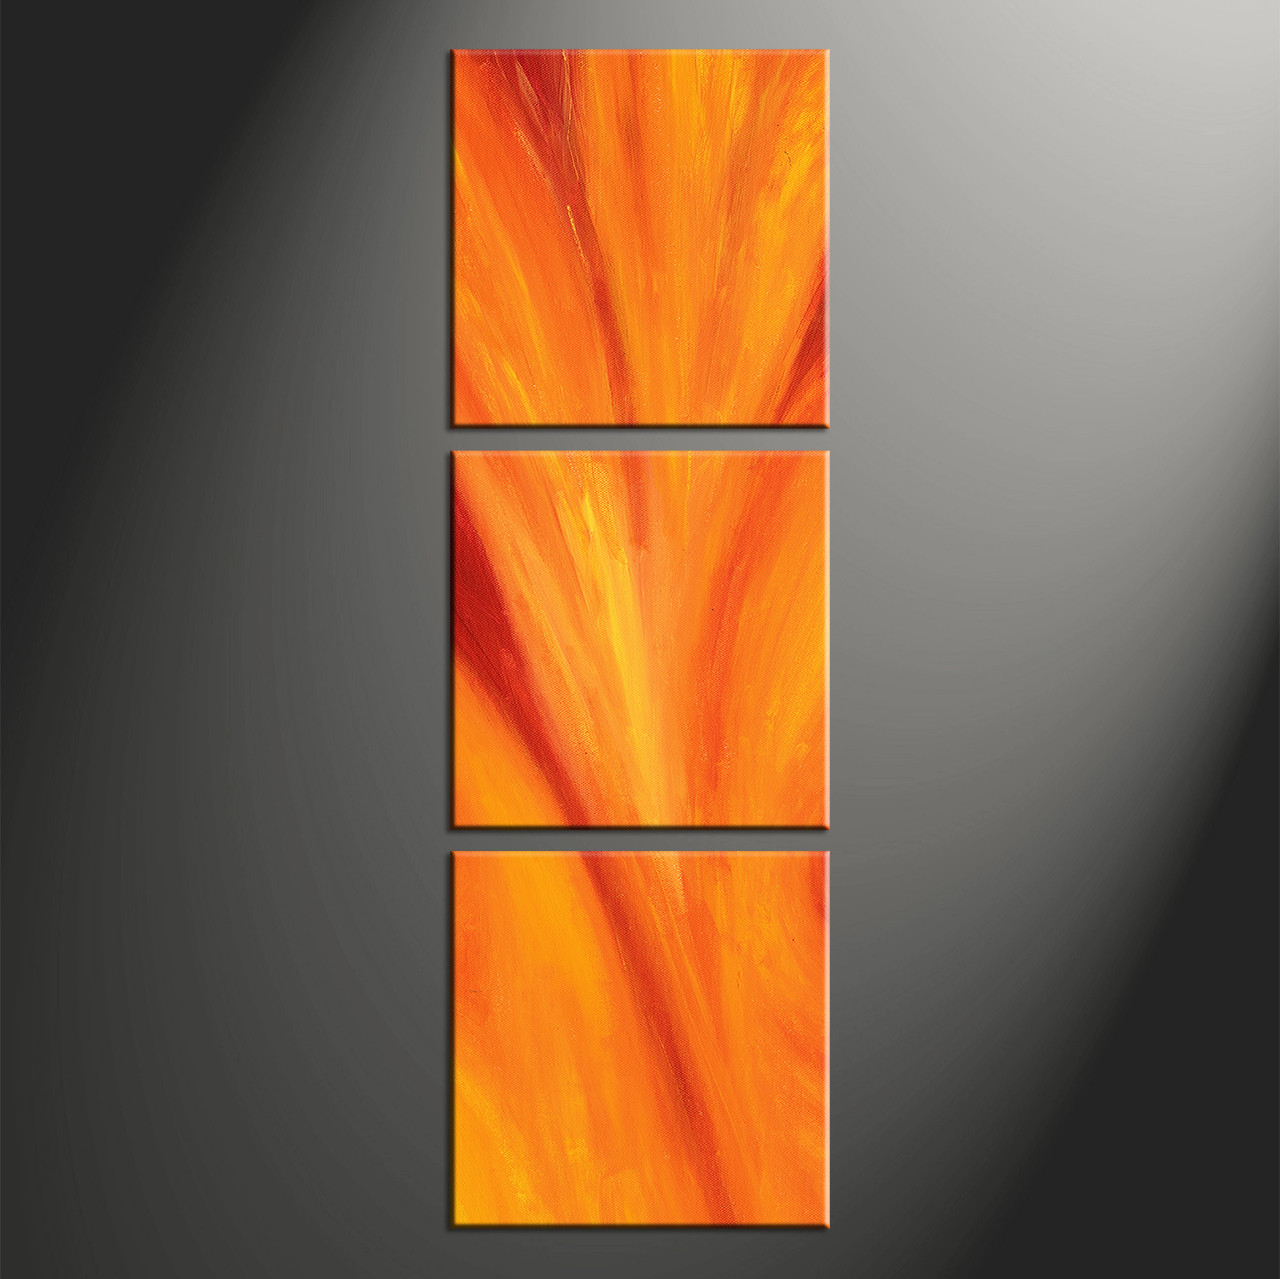 Large Vertical Paintings 3 Piece Red Canvas Orange Abstract Wall Art